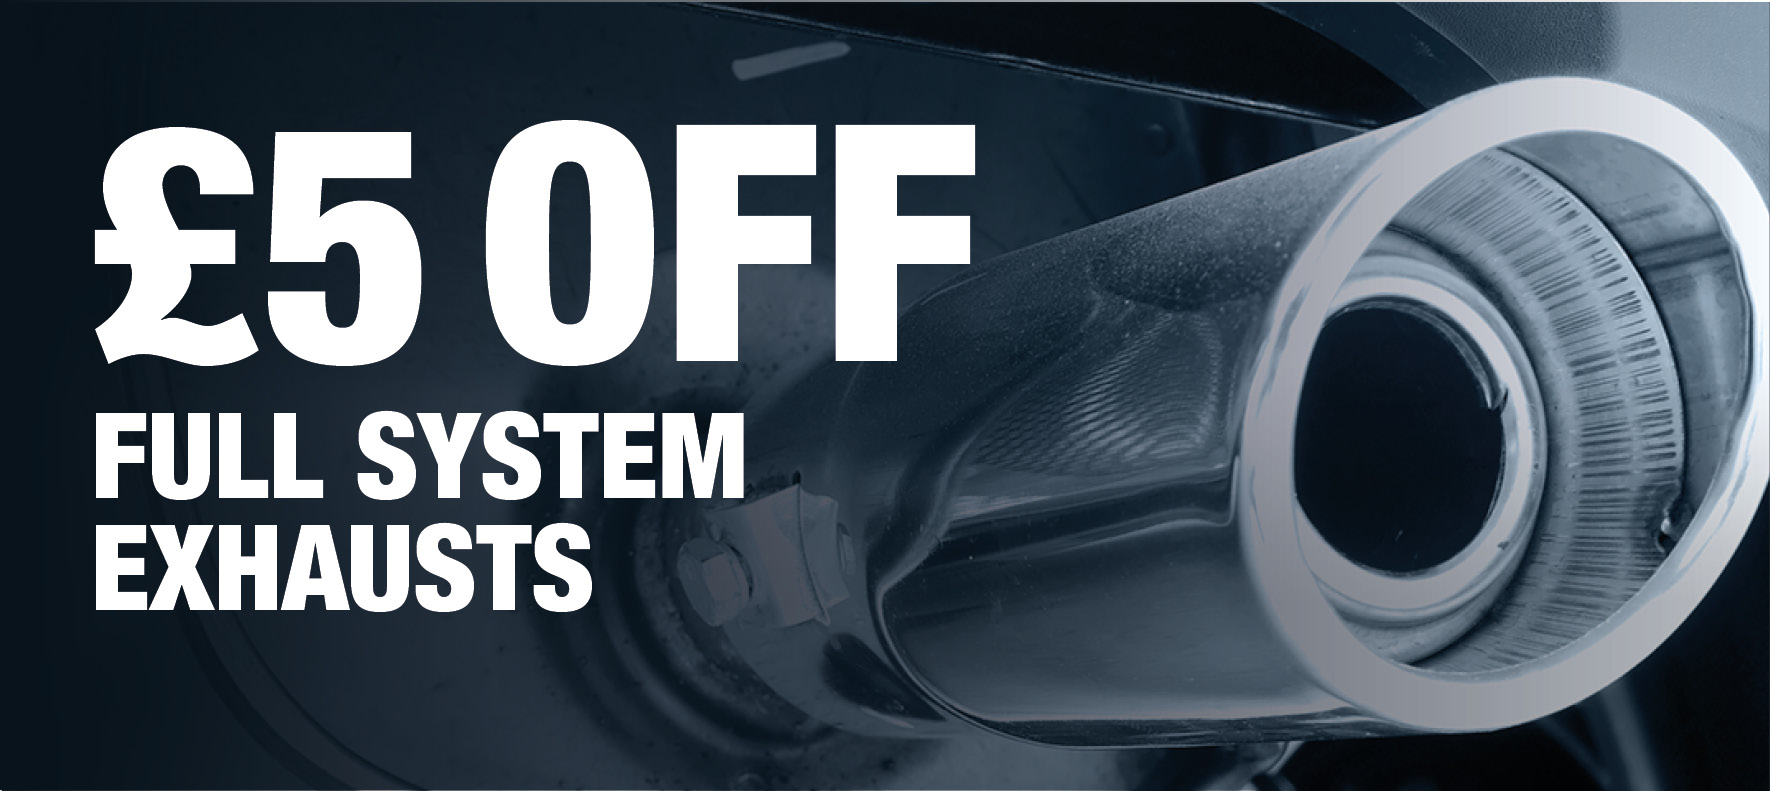 Save £5 on Full System Exhausts at Formula One Autocentres